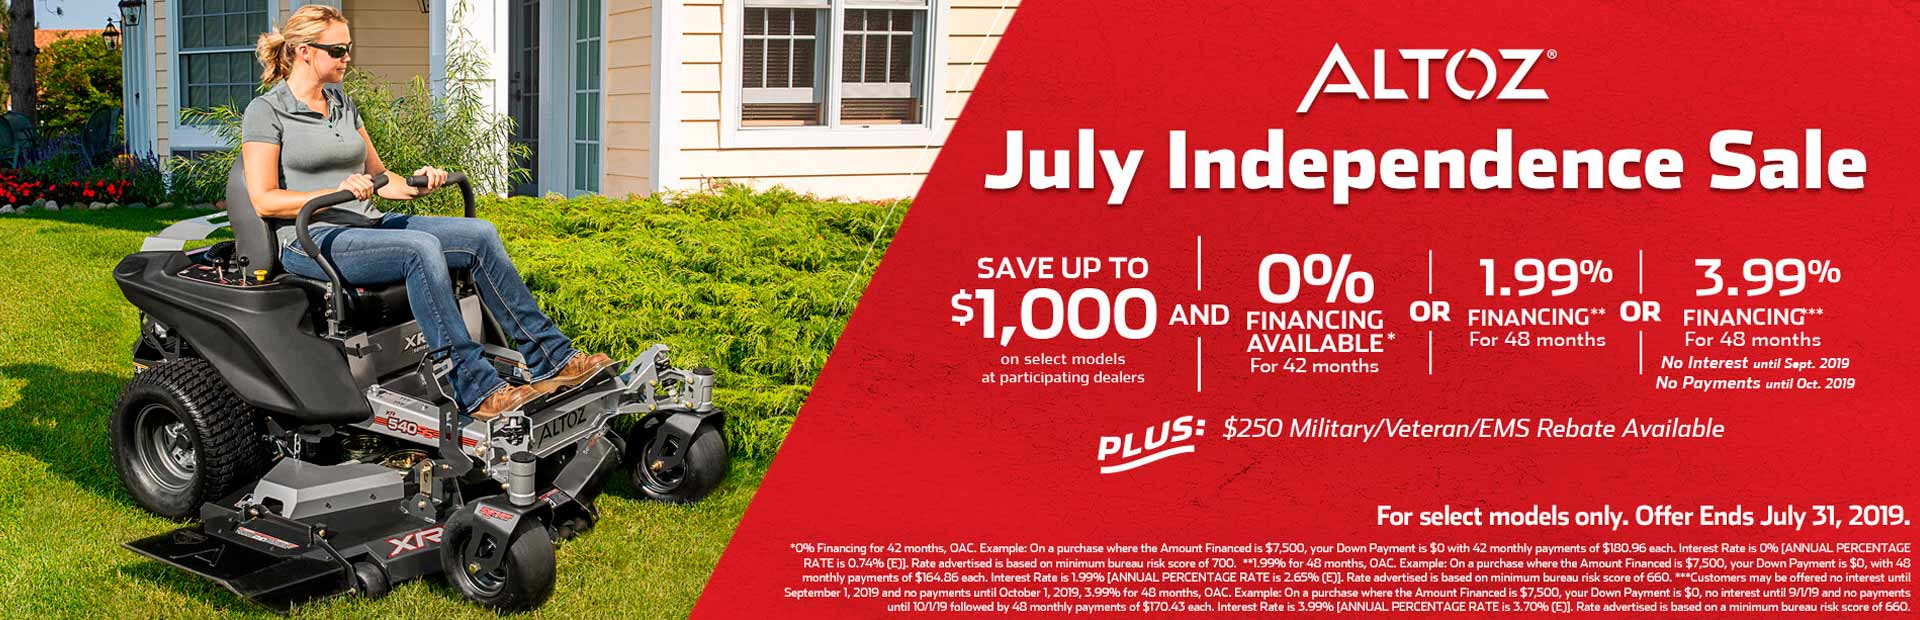 Altoz: July Independence Sale